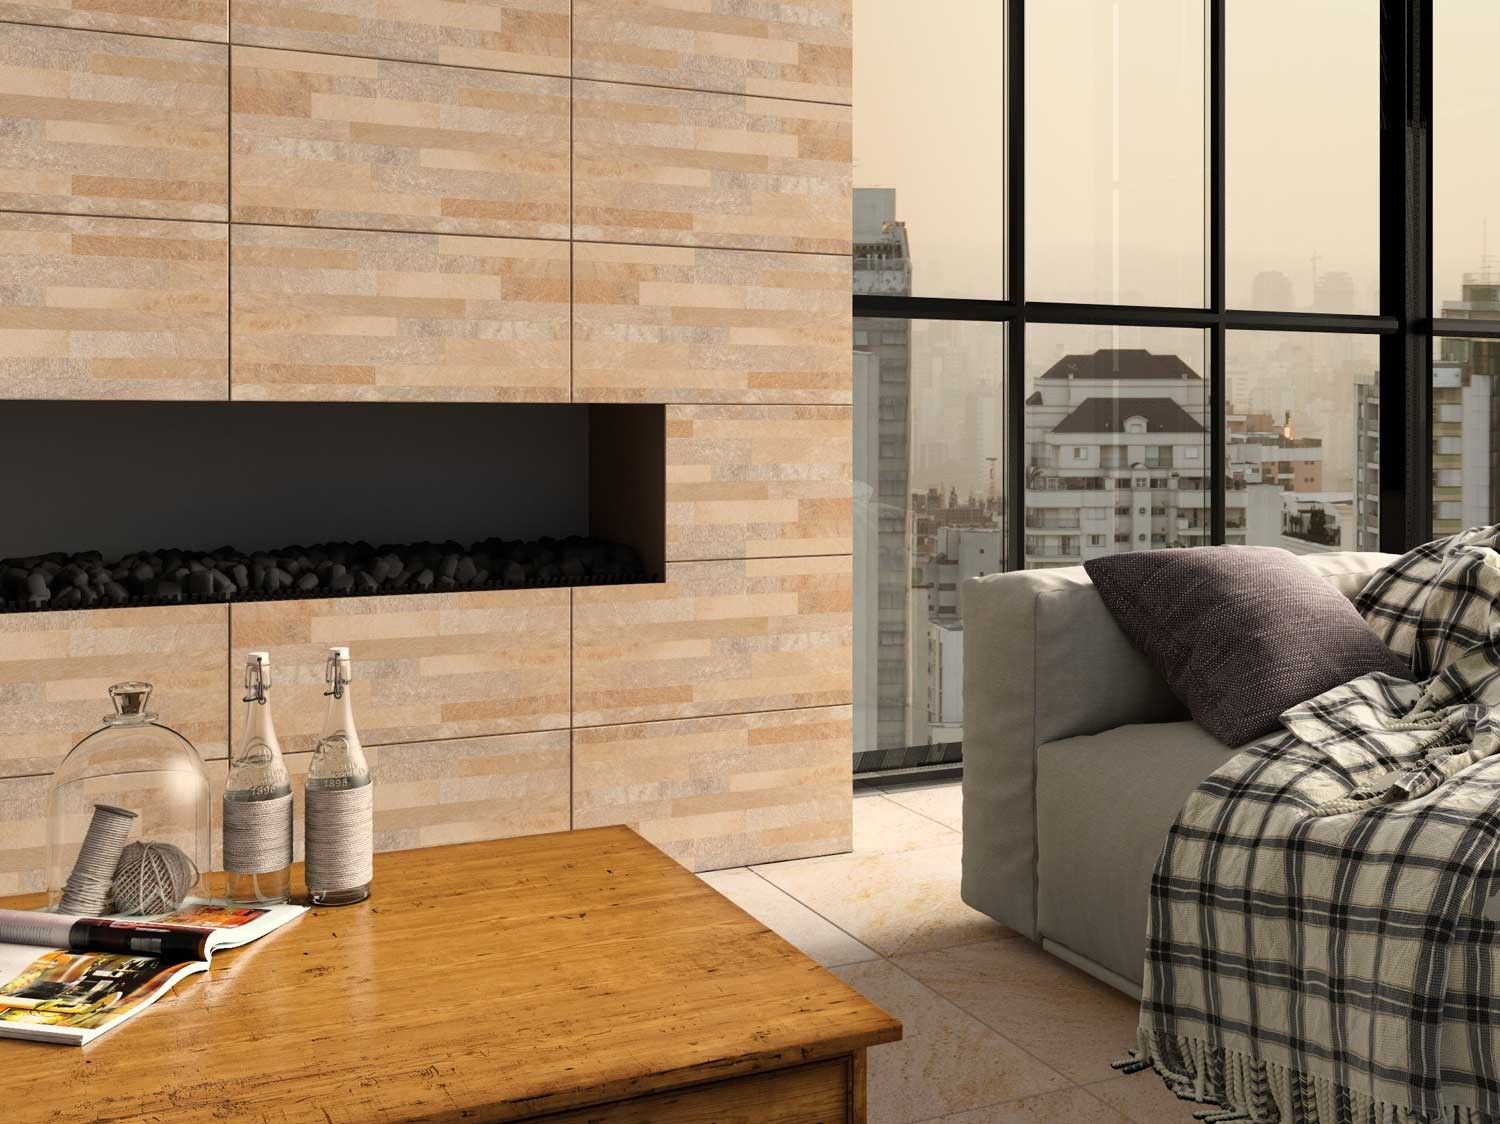 African Stone Cladding Wall Tile Ctm Inspired Living Ceramic